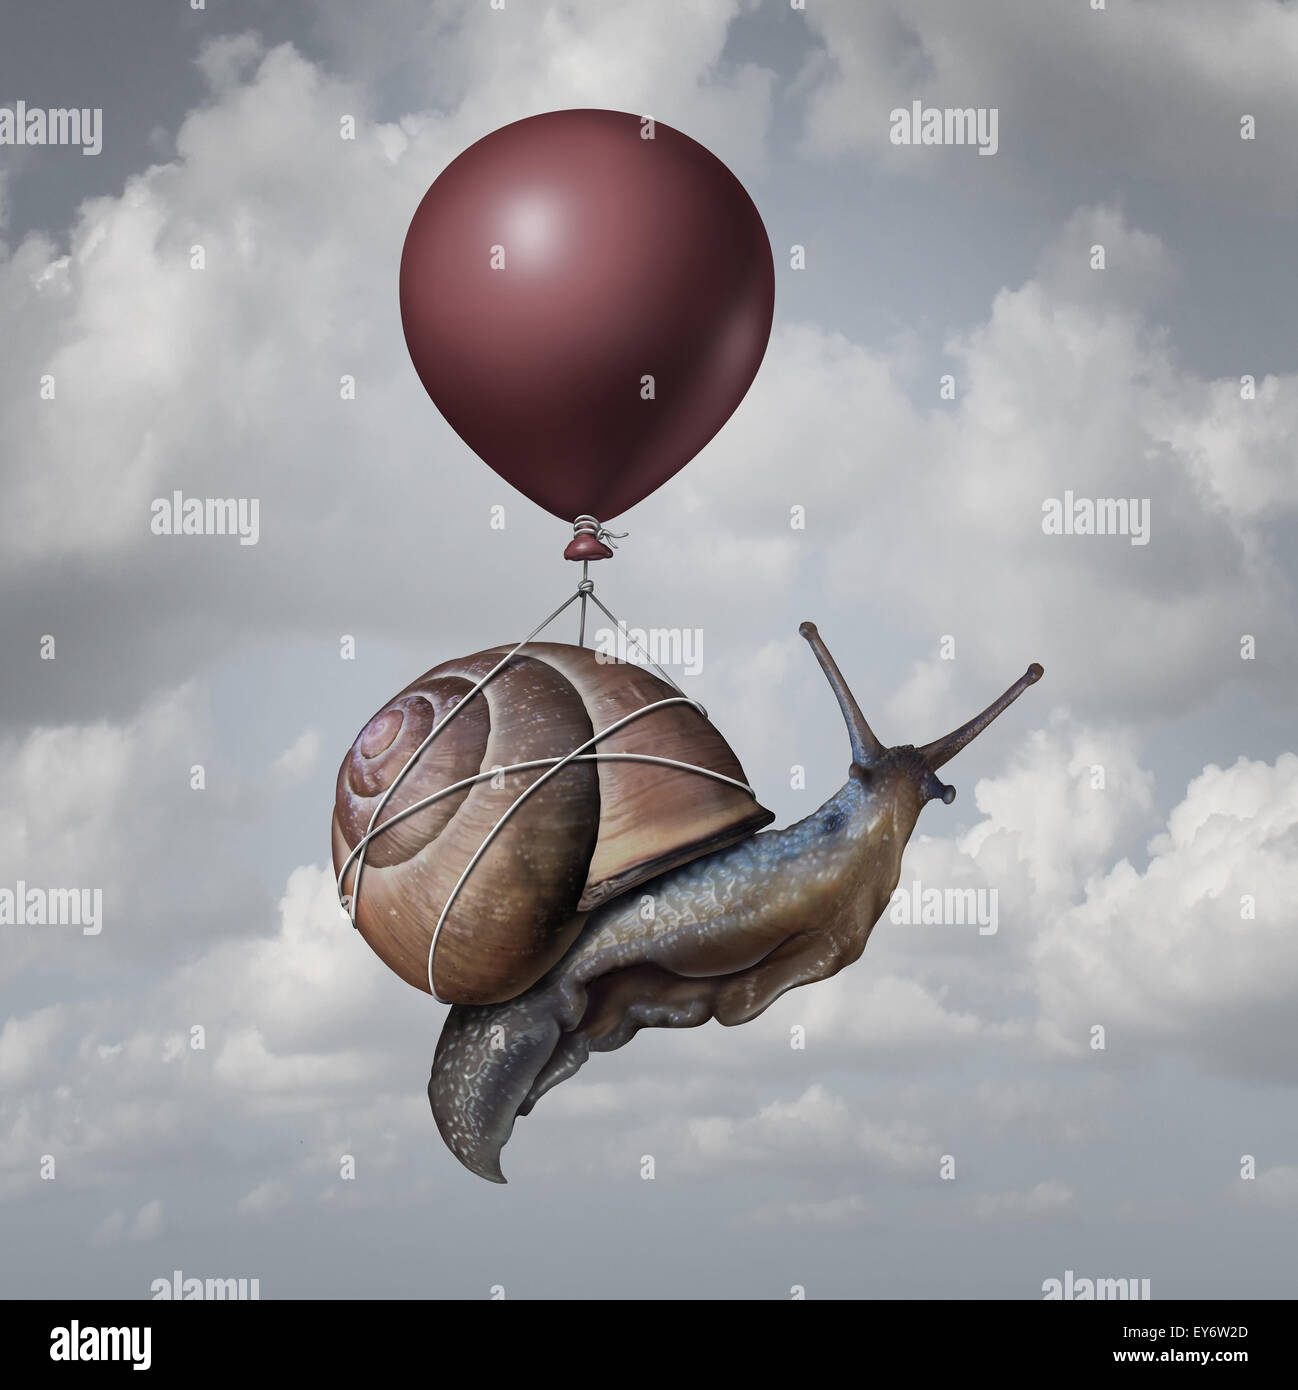 Success concept  and business advantage idea or game changer symbol as a balloon lifting up a slow generic snail - Stock Image